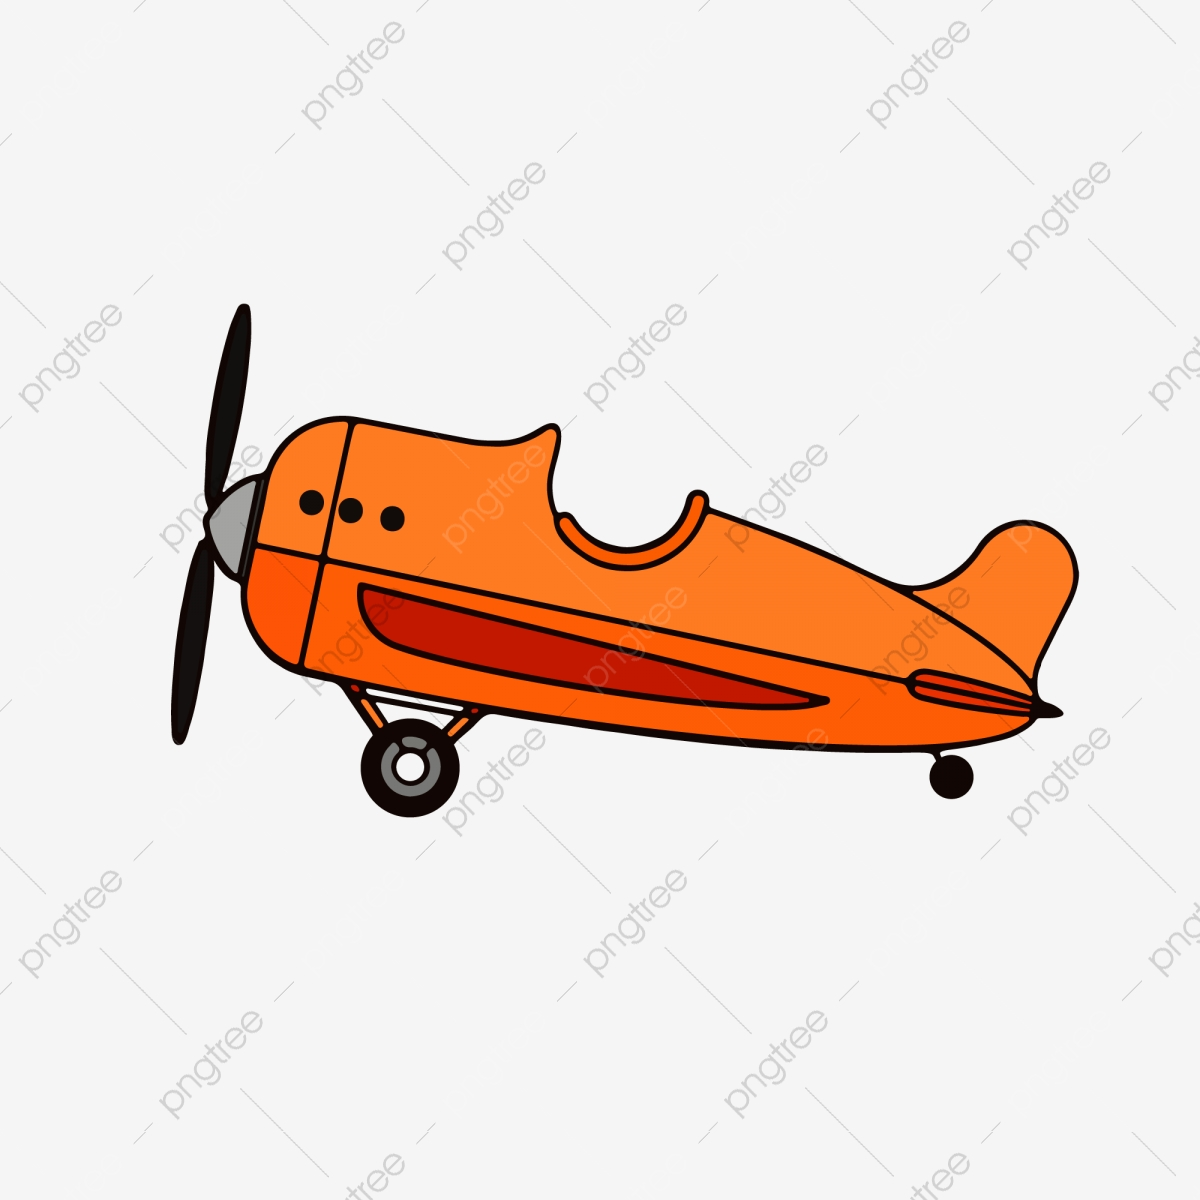 Cute Cartoon Plane Vector Plane Cartoon Plane Cute Plane Png